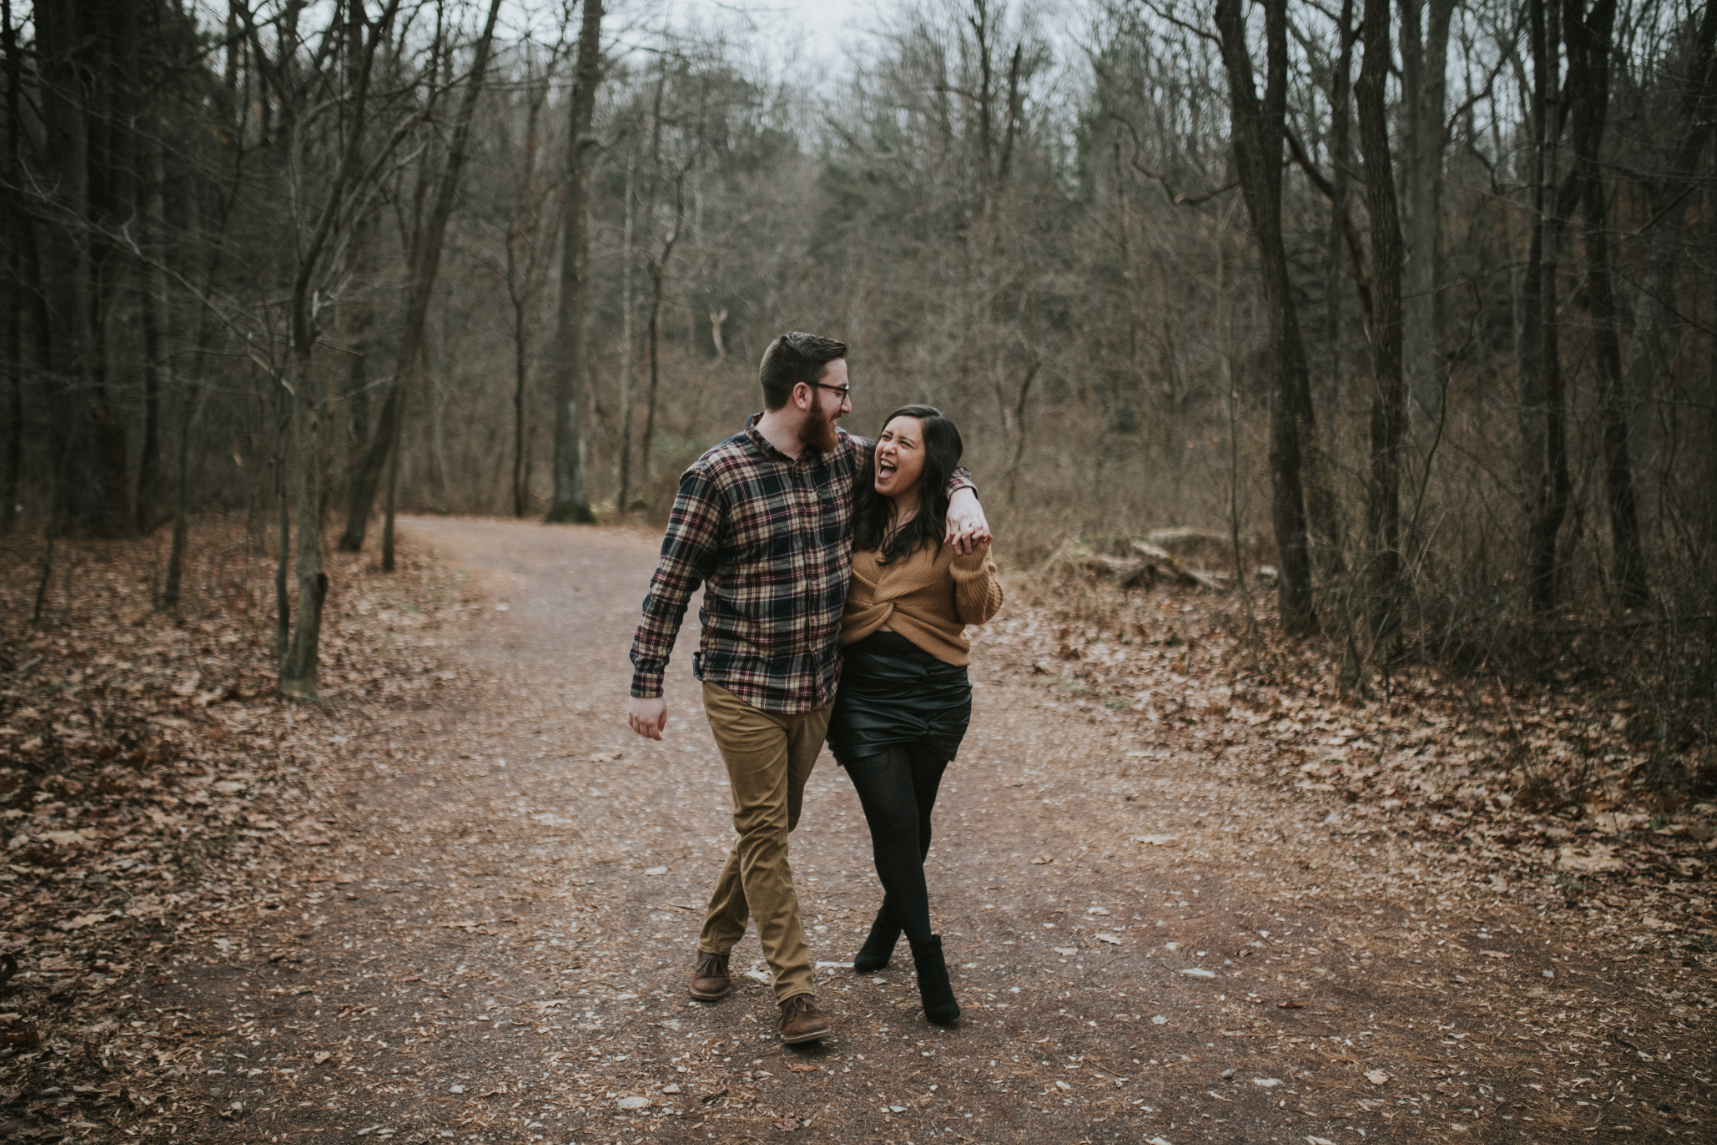 matt-natalia-winter-woods-engagement-session-pennsylvania-wedding-photographer-11